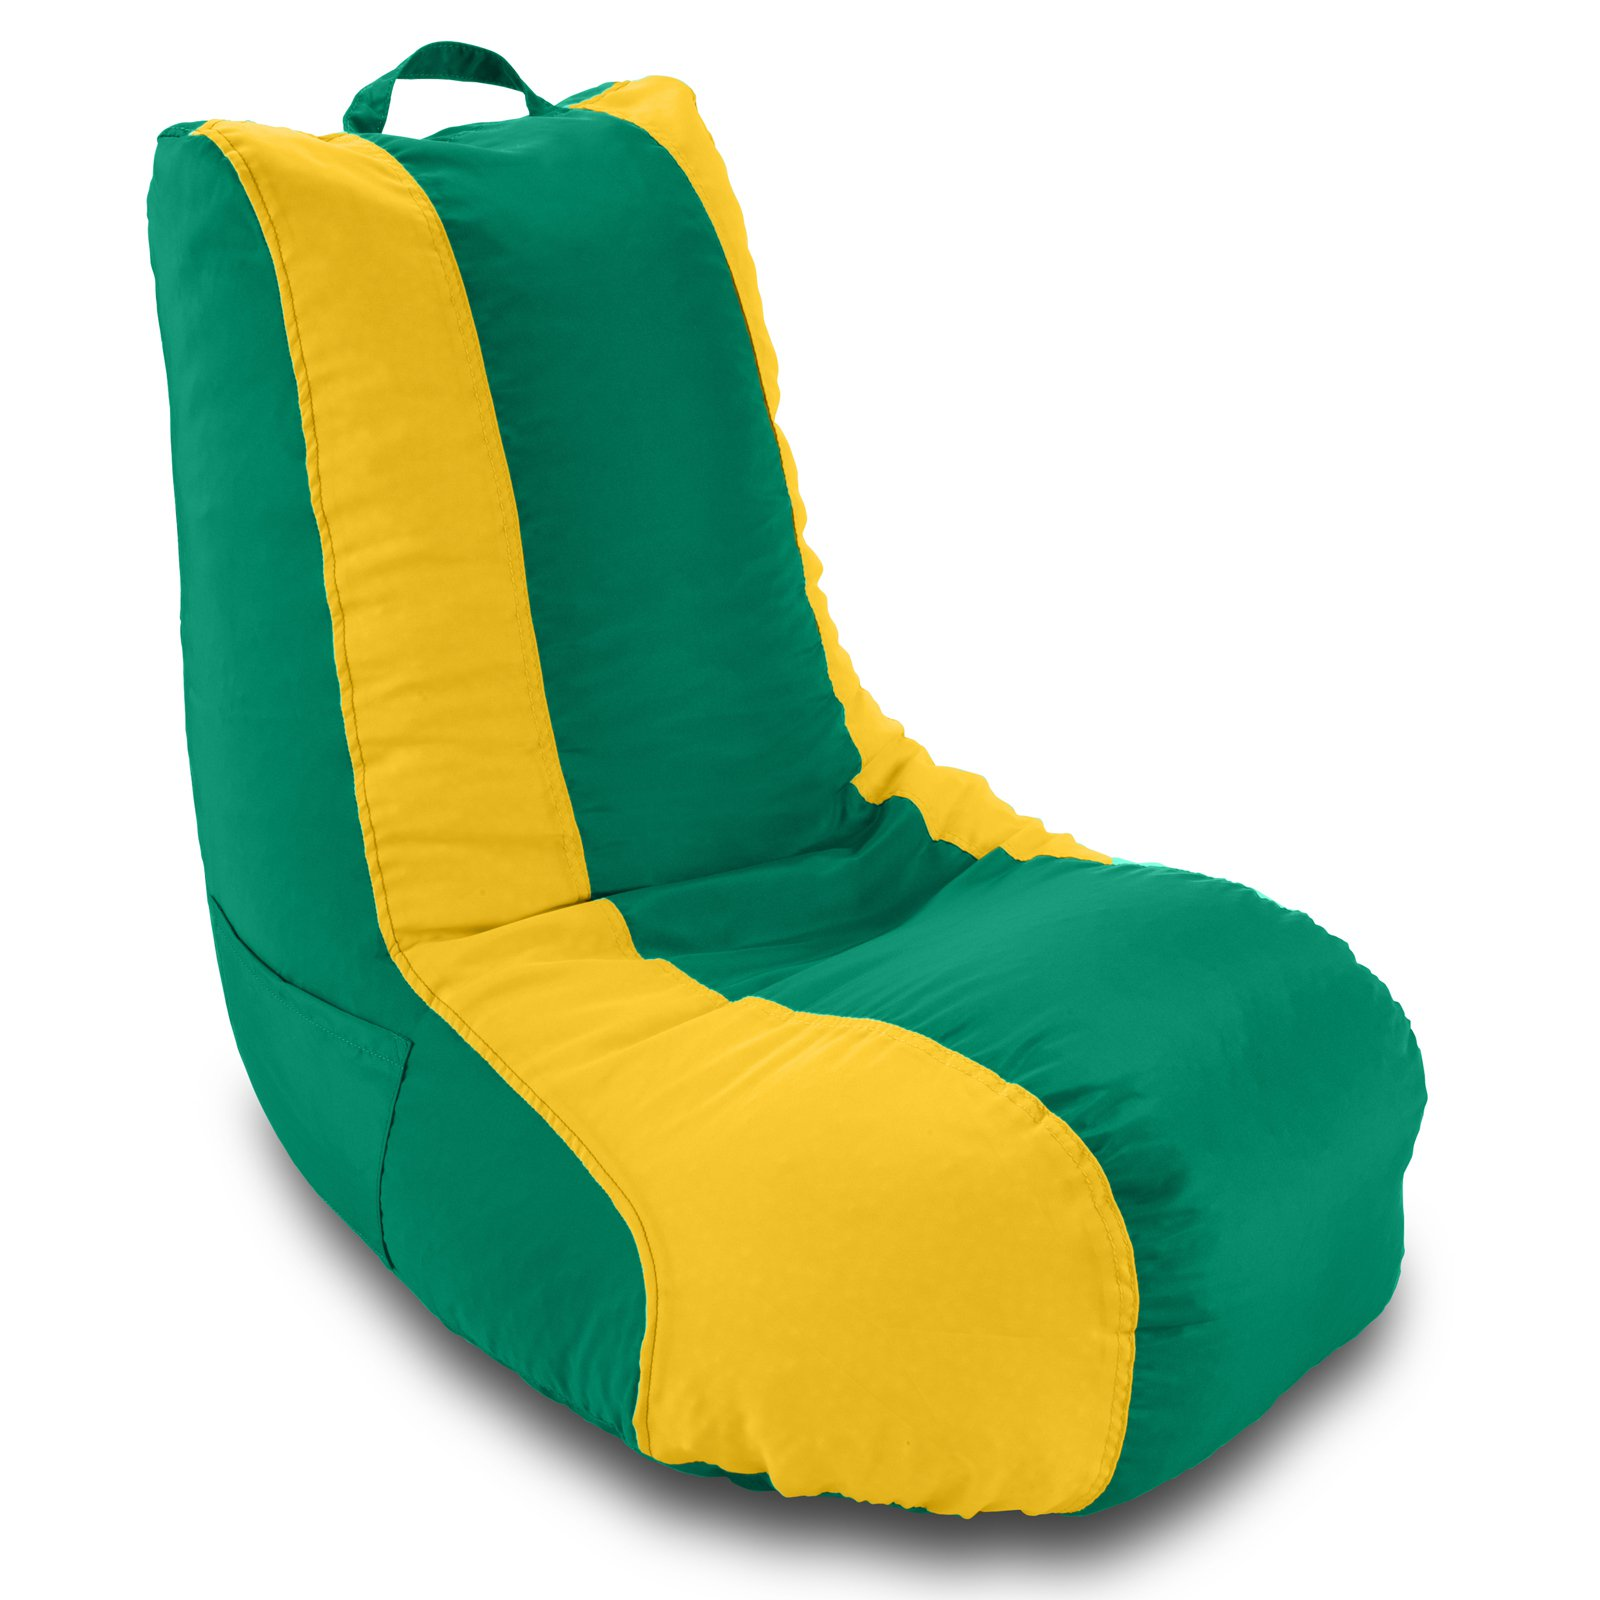 Ace Casual Furniture Medium School Video Game Chair Green Yellow